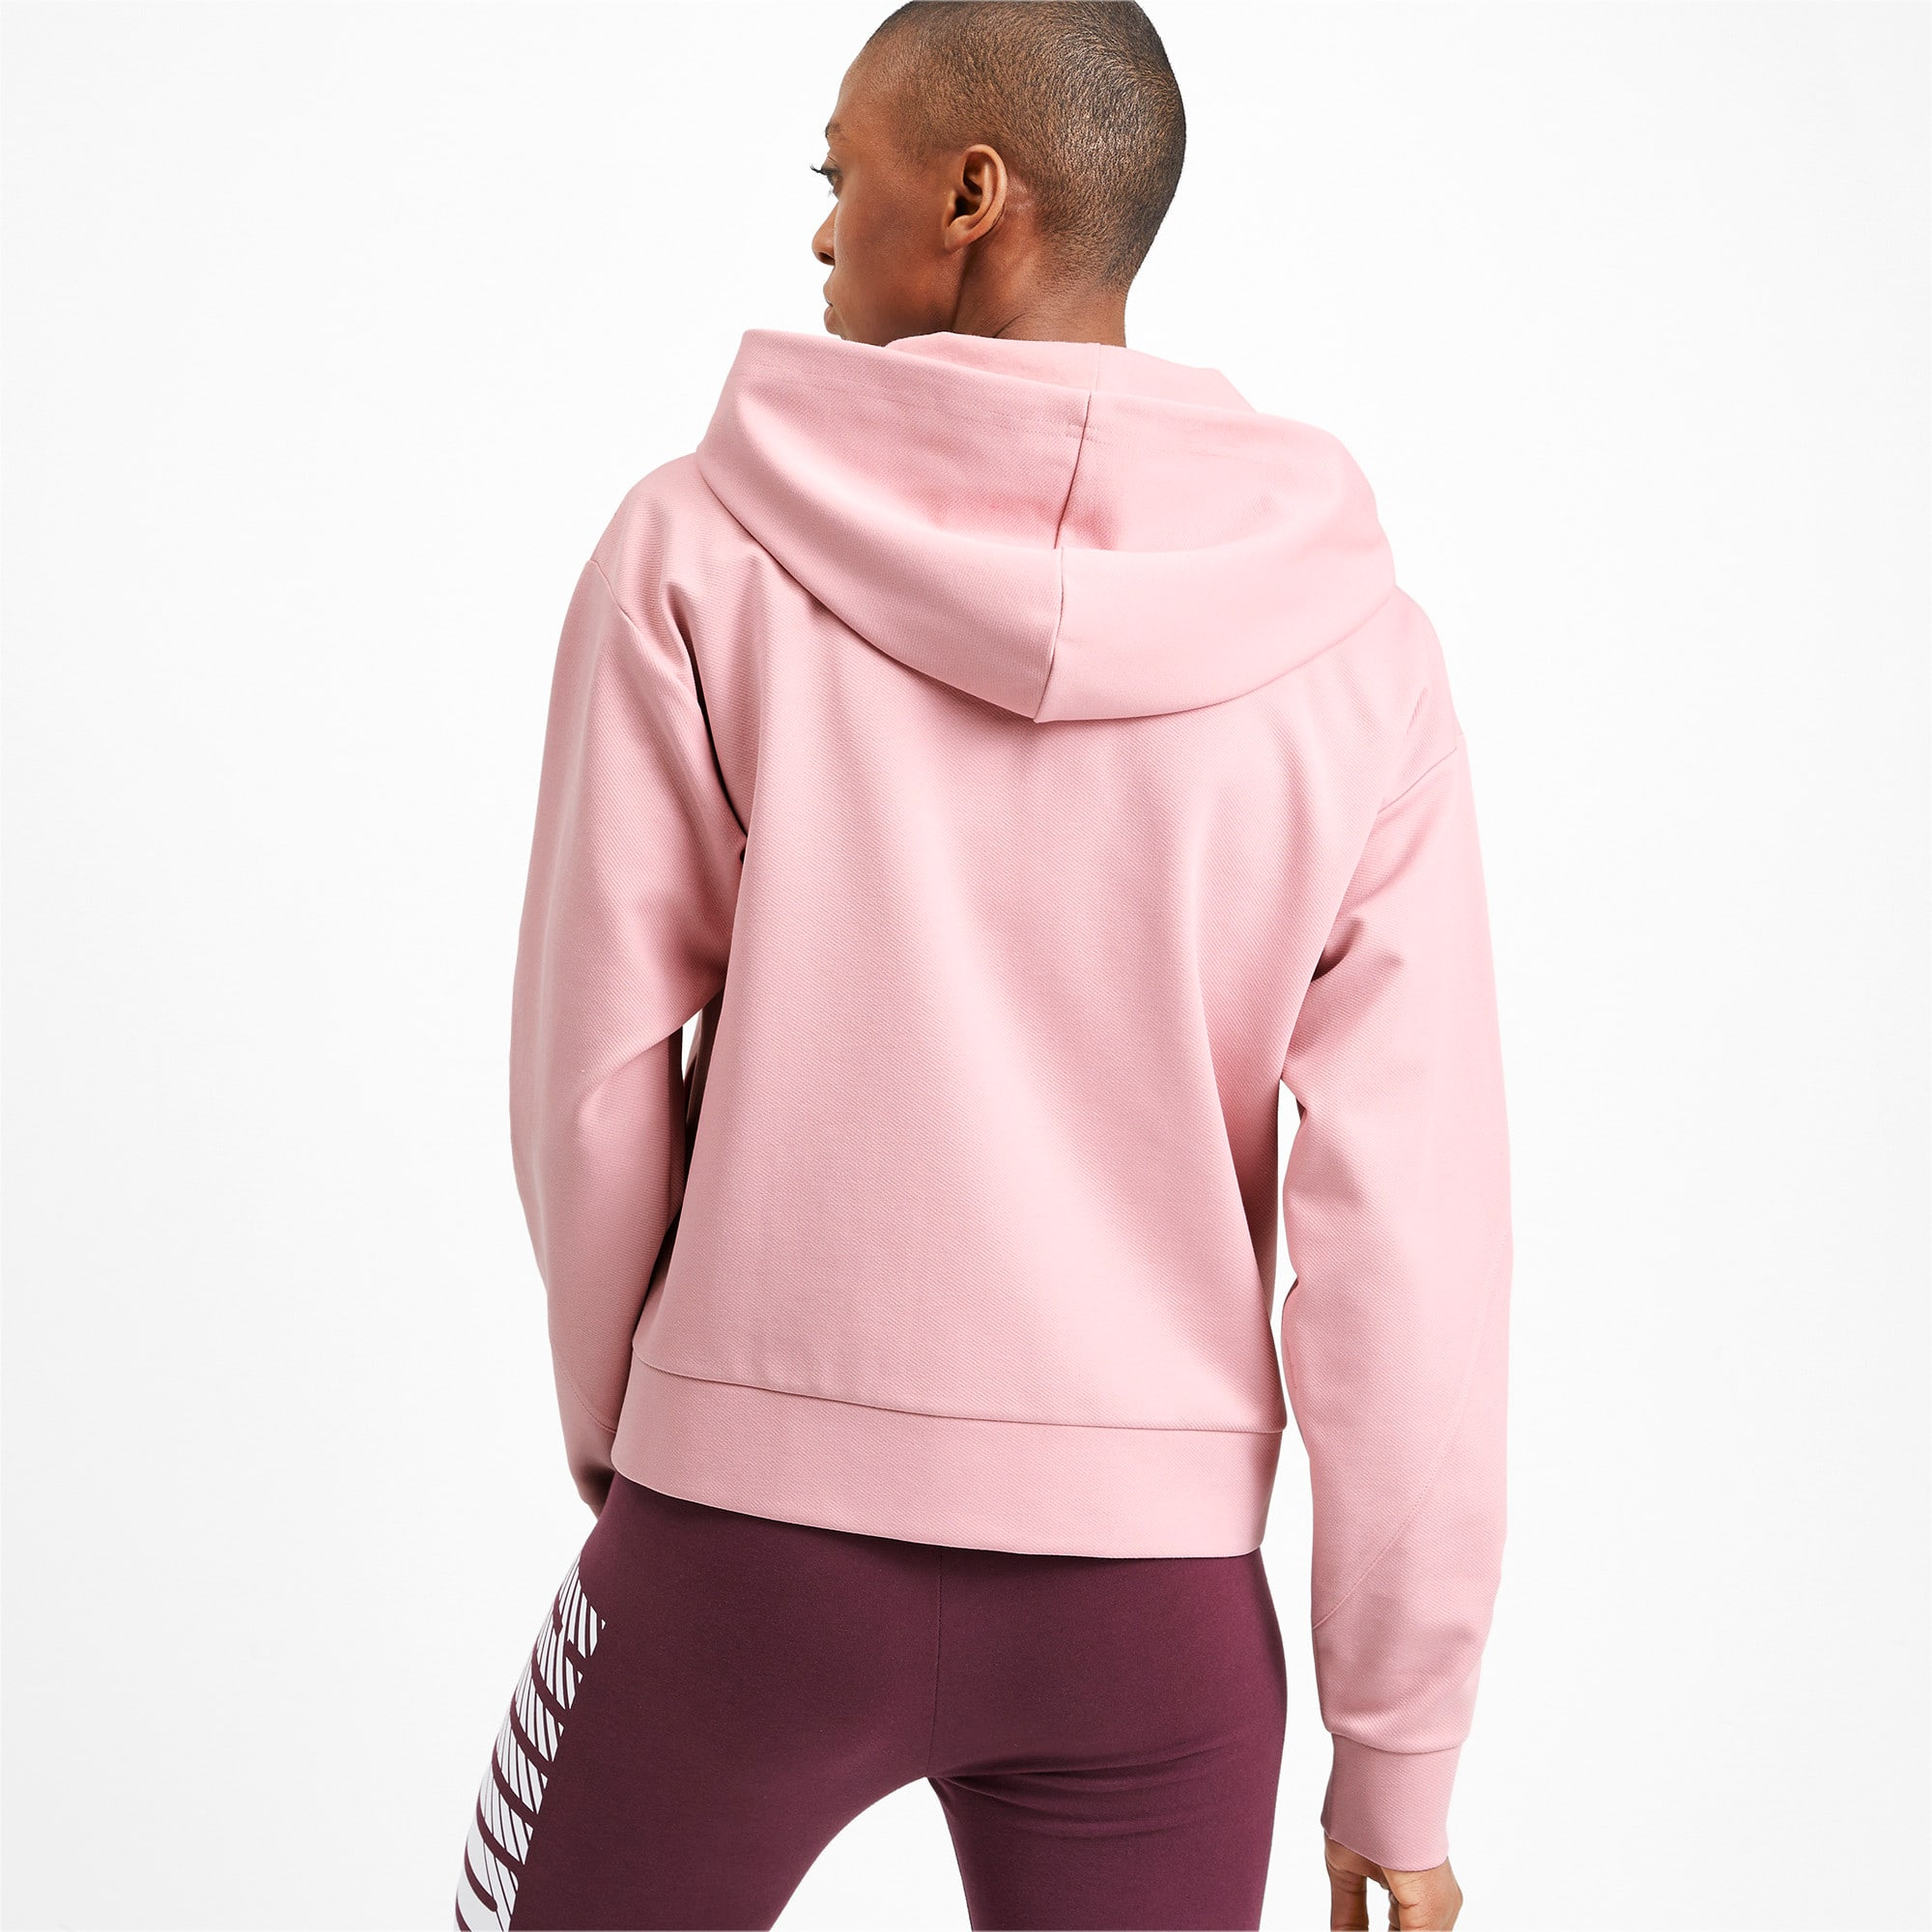 Thumbnail 2 of Blouson en sweat à capuche NU-TILITY pour femme, Bridal Rose, medium